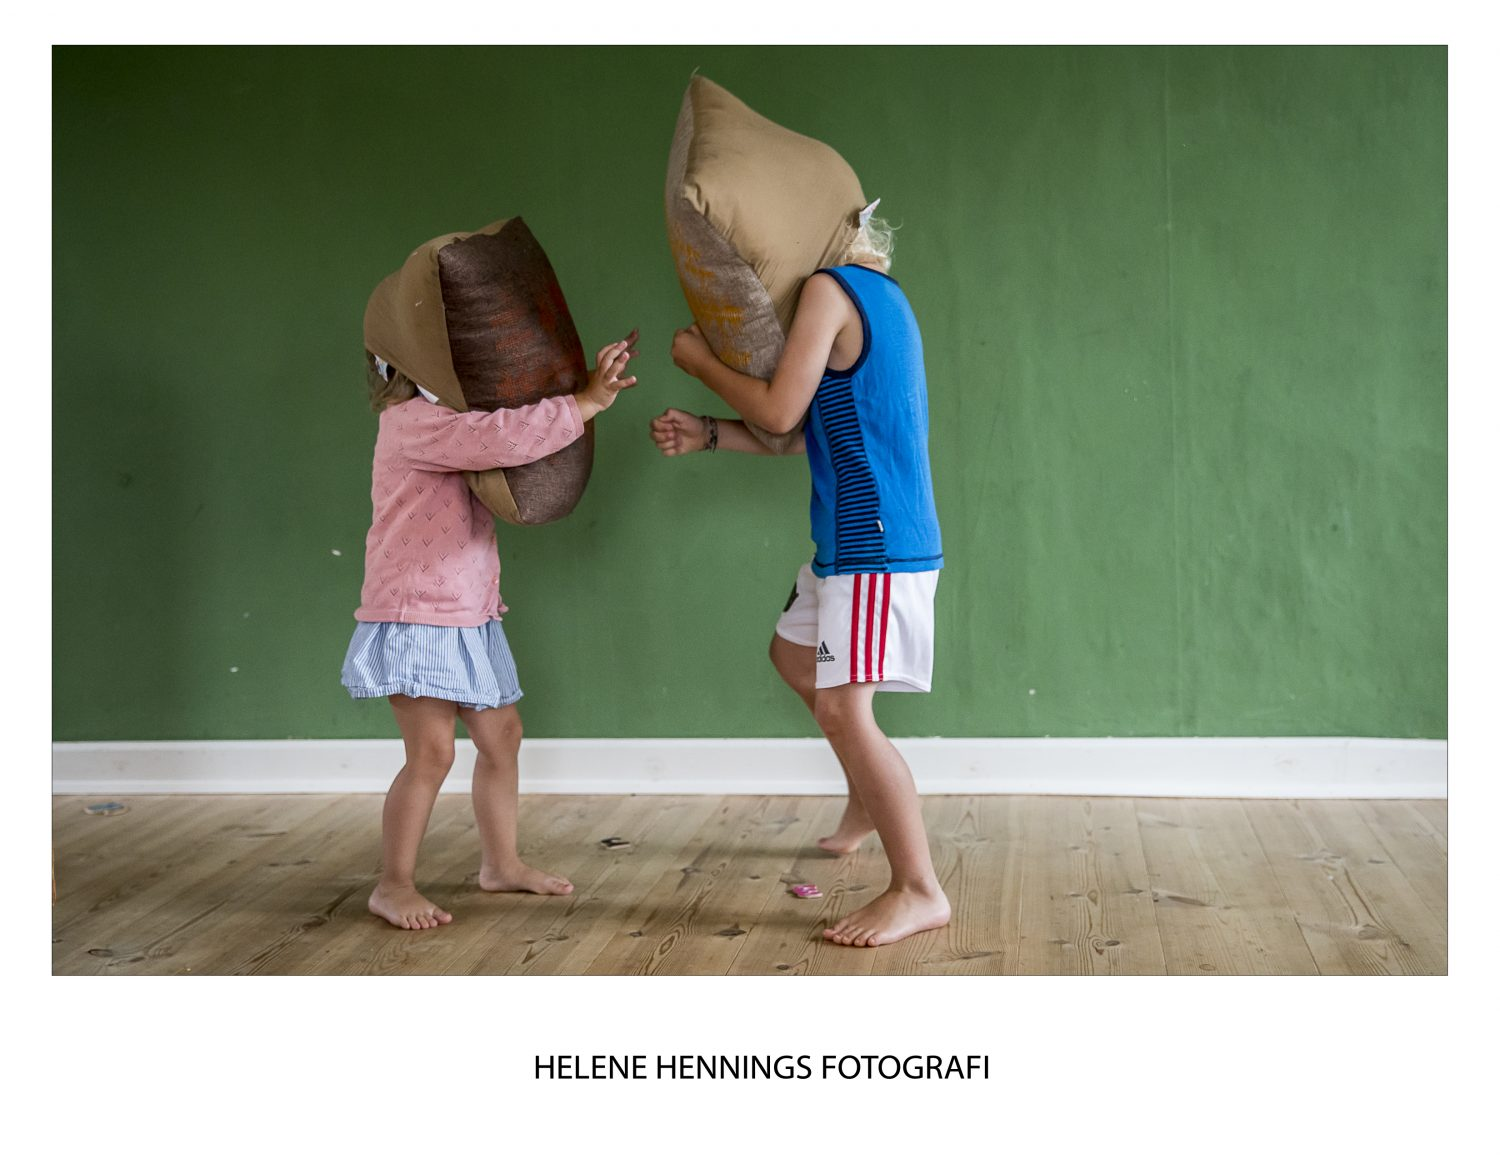 siblings play zombies with pillows on their heads